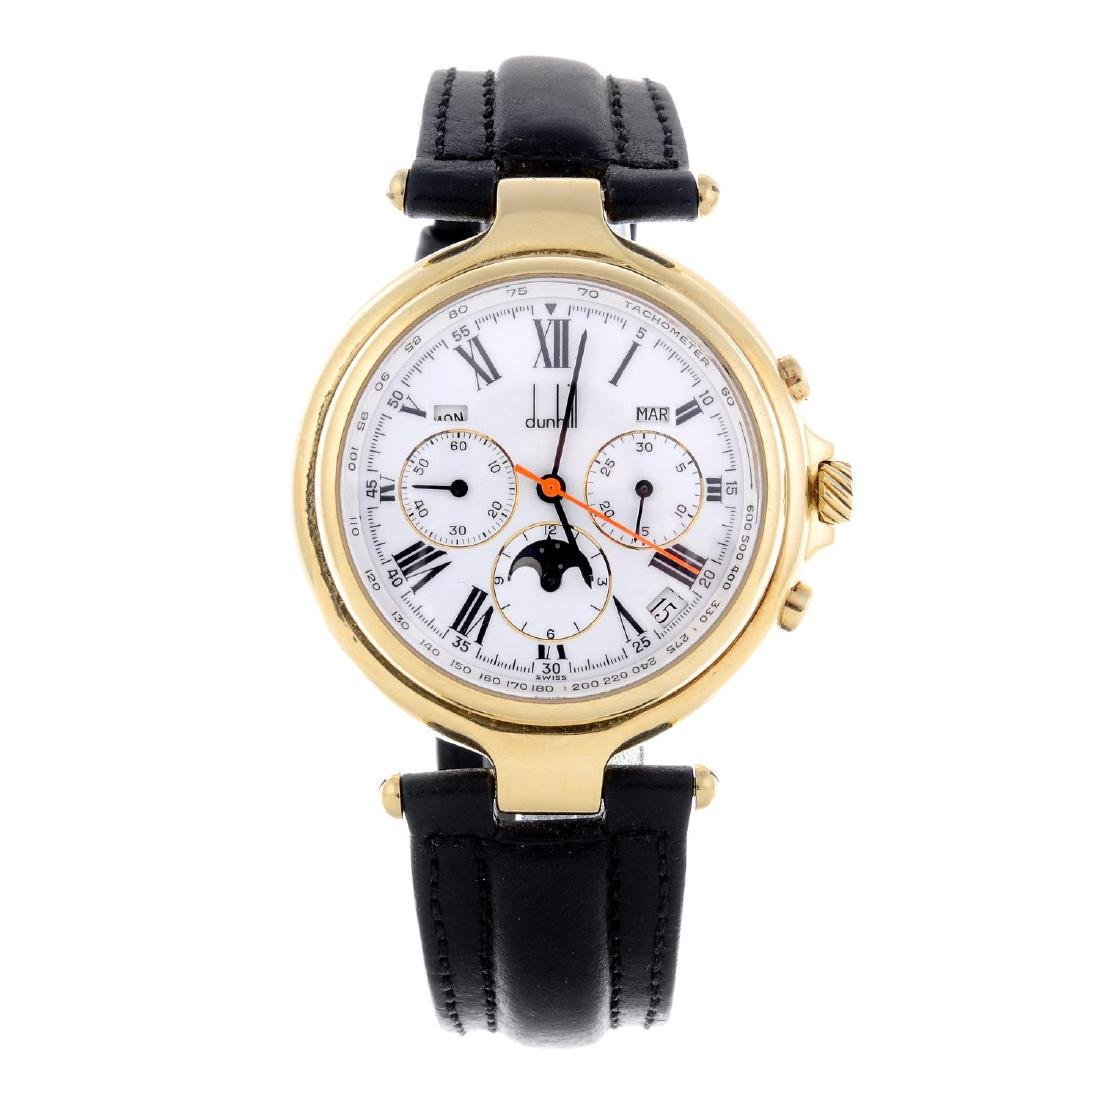 DUNHILL - a gentleman's chronograph wrist watch. 18ct